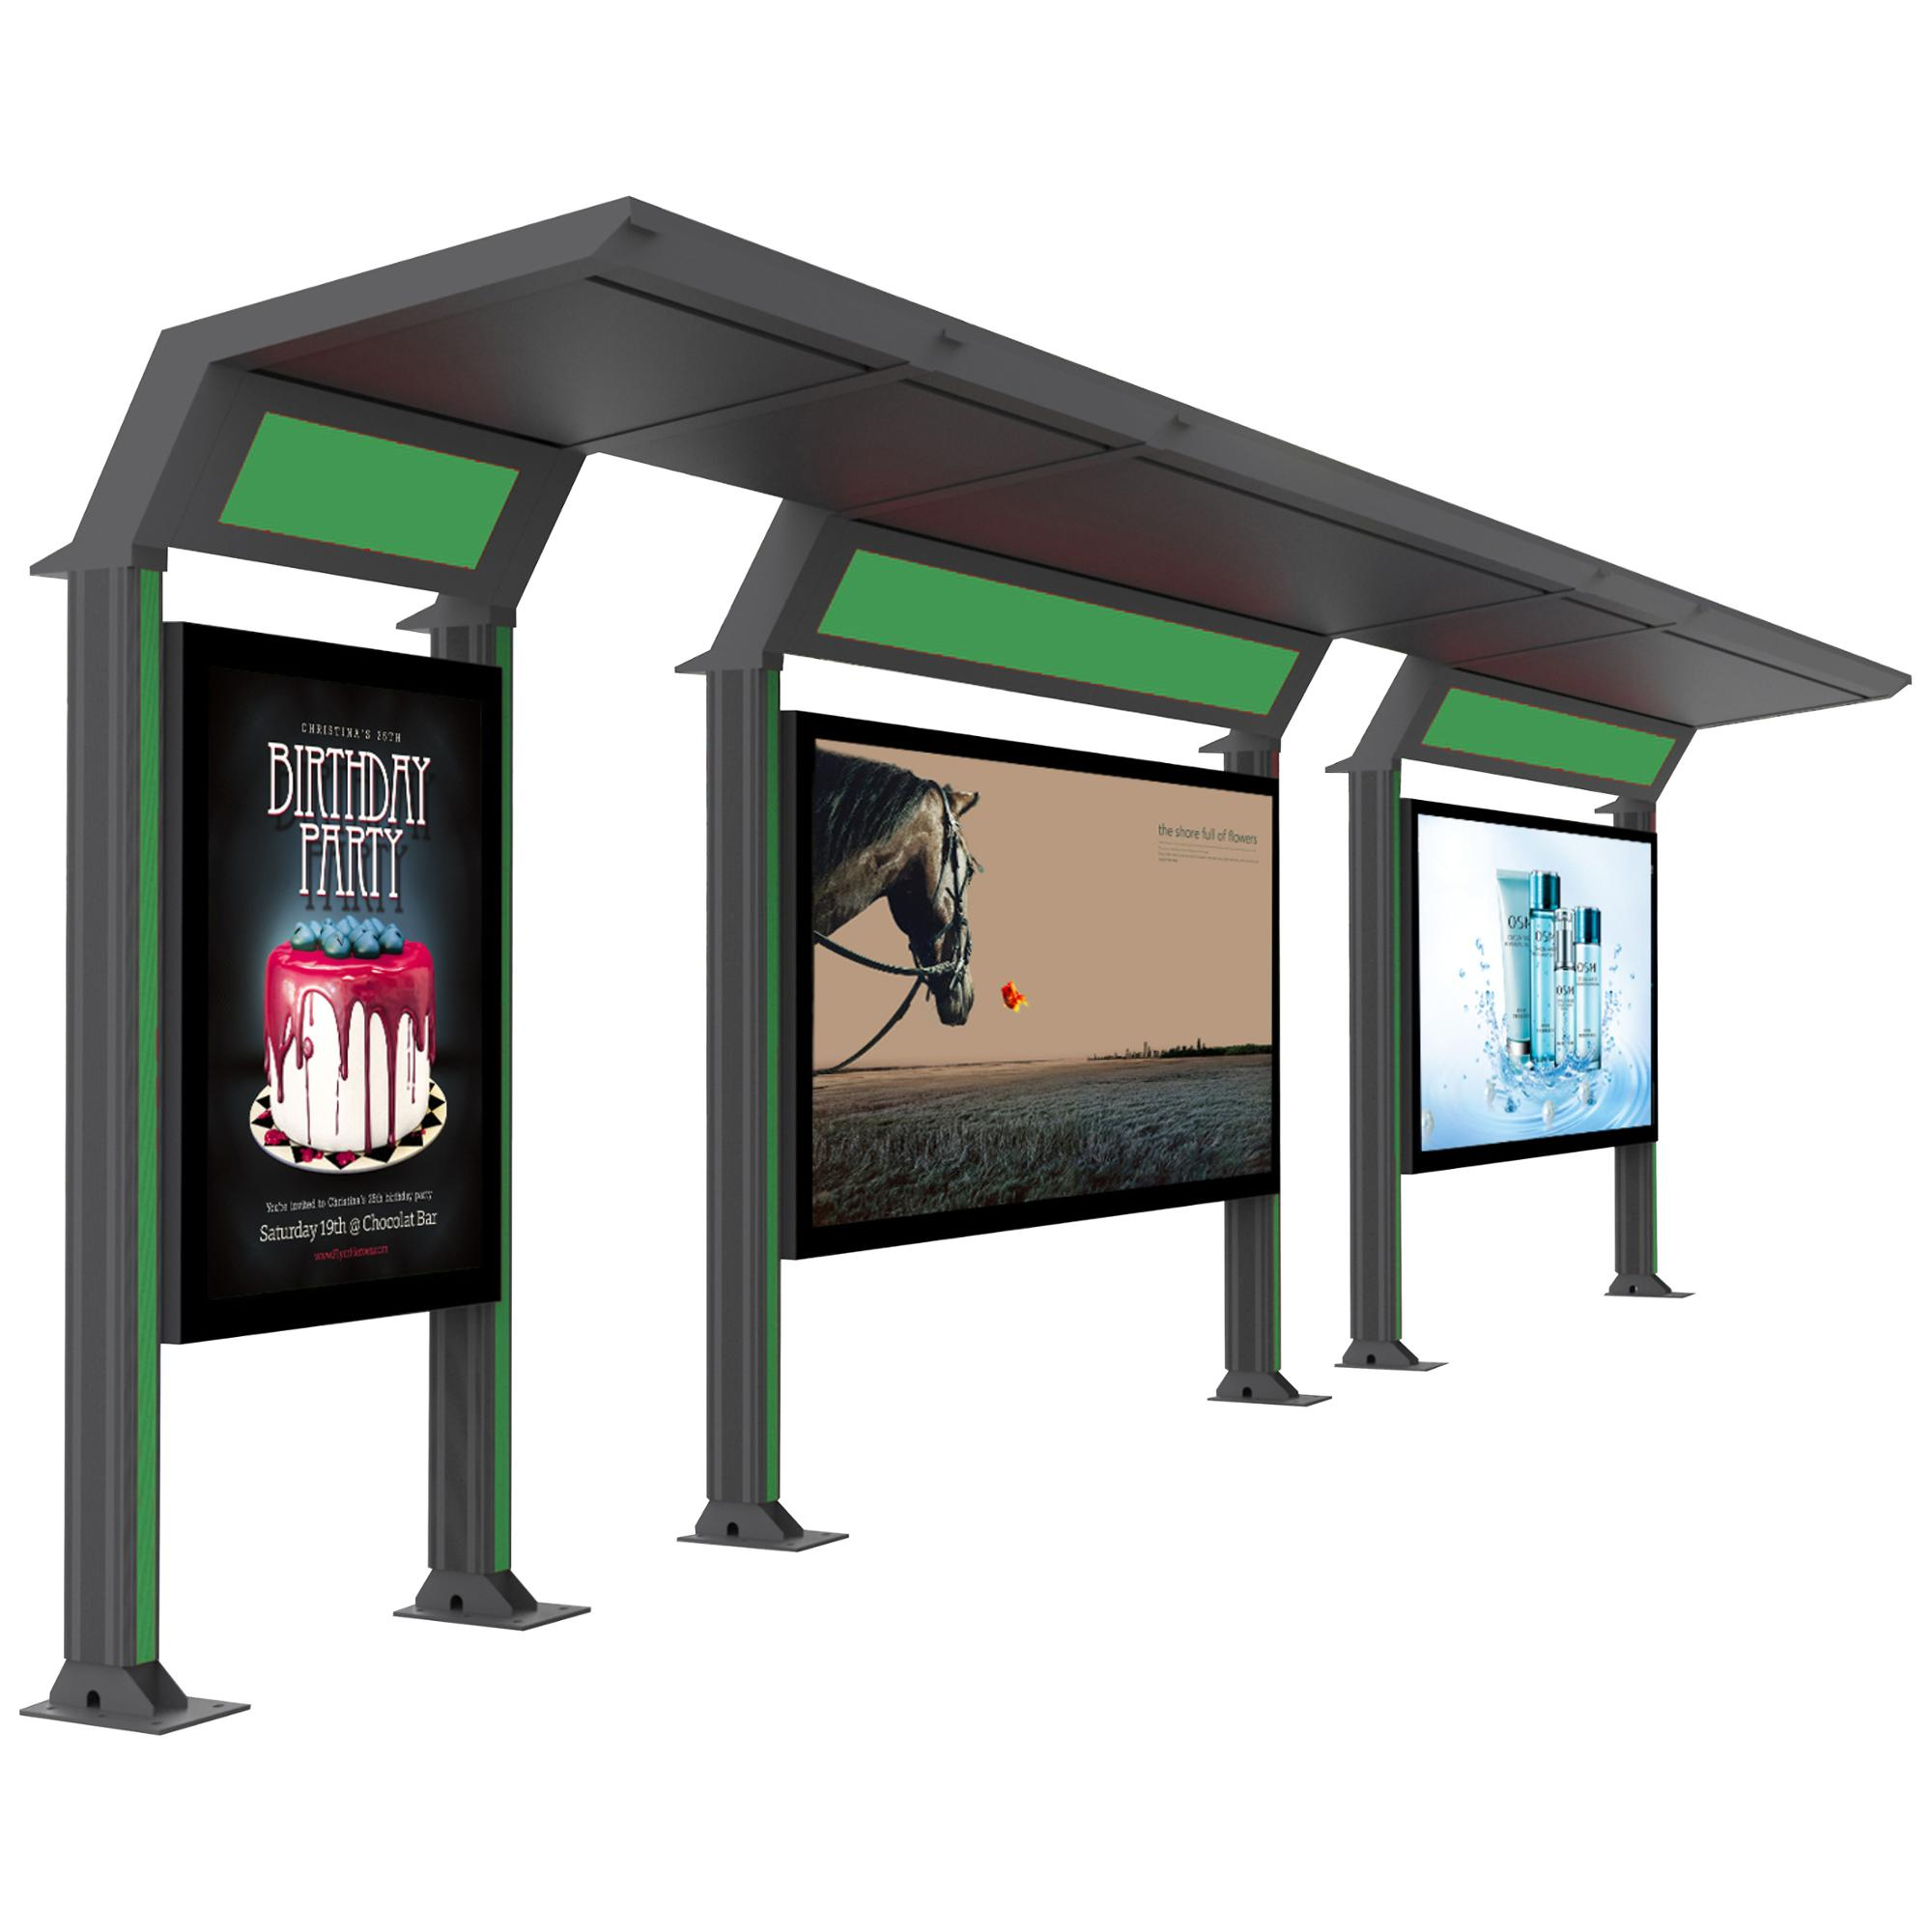 product-YEROO-City public modern Stainless steel structure bus stop shelter design-img-4